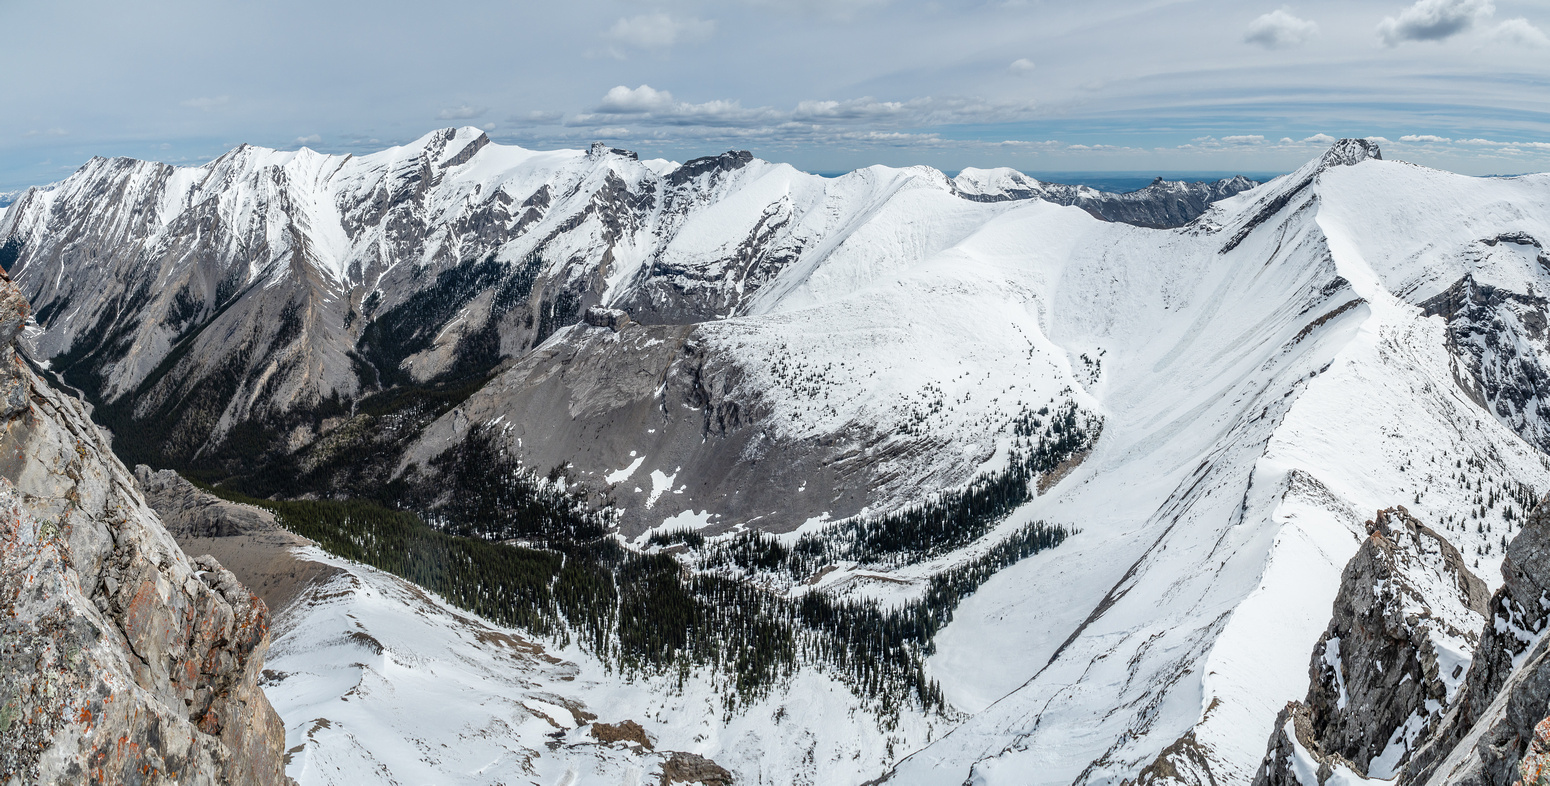 Mount Townsend at right, Stenton at left.